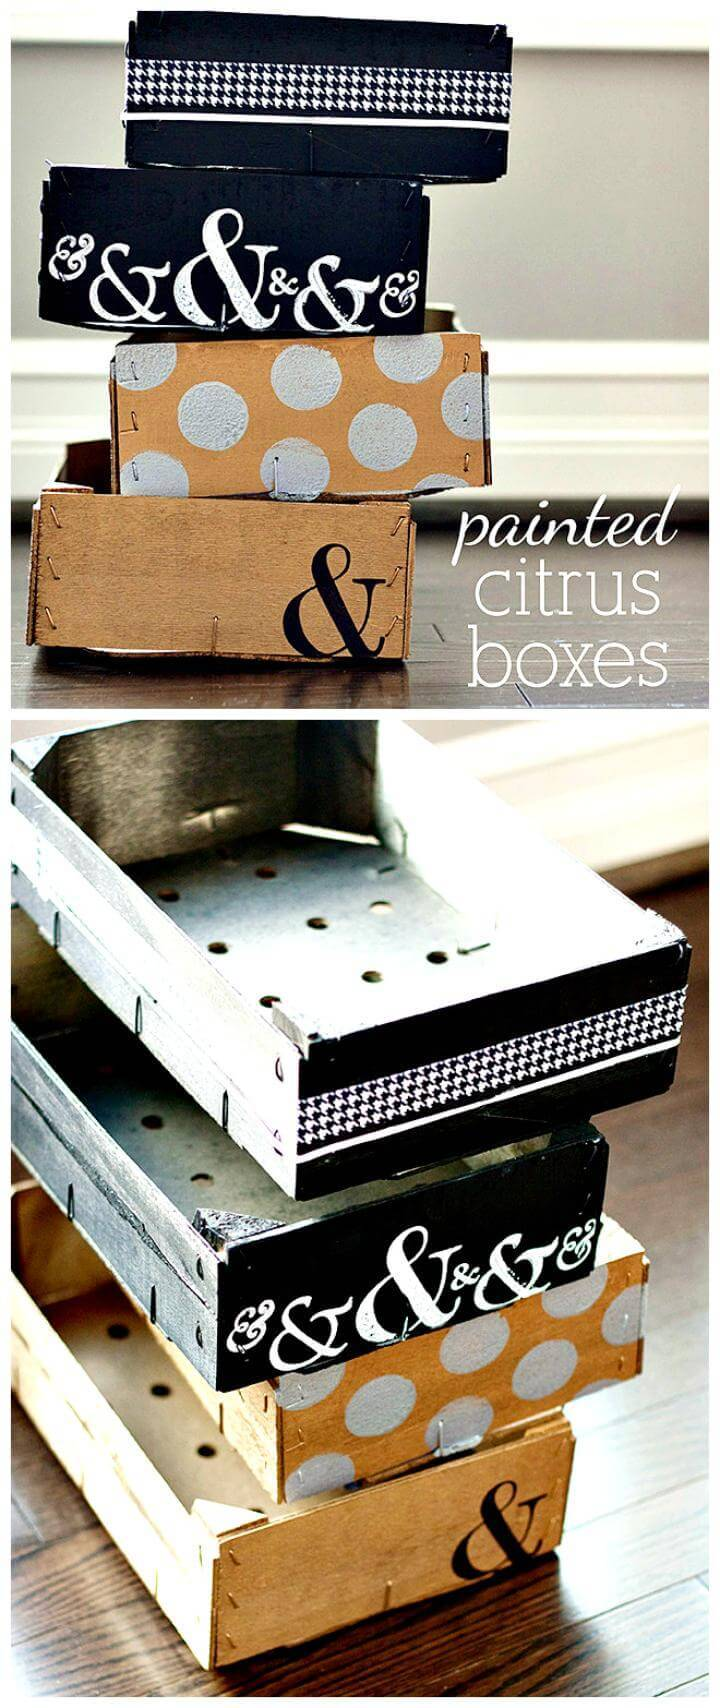 DIY painted citrus boxes Mother's Day gift idea